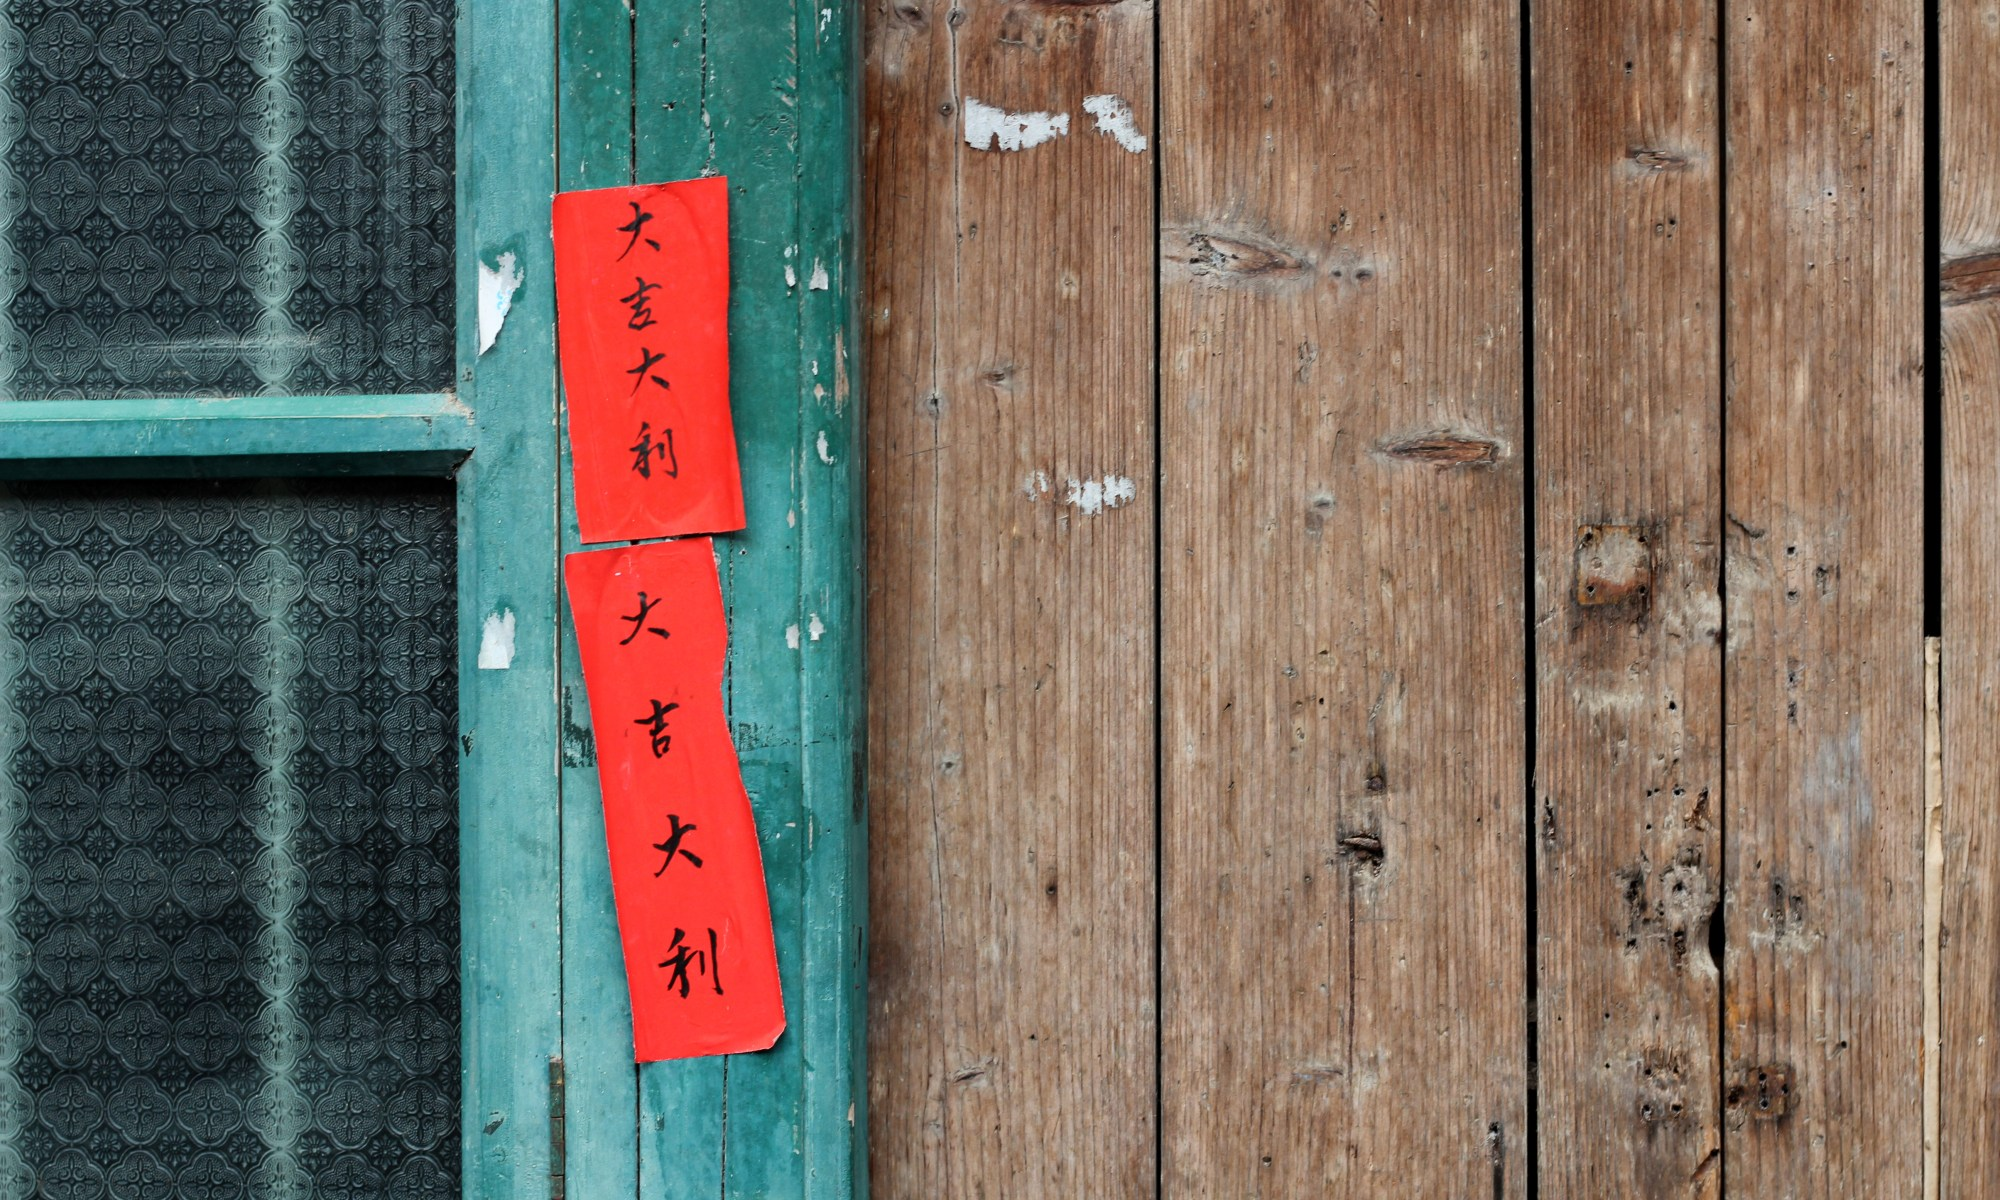 Red sign in Chinese on a turquoise door.